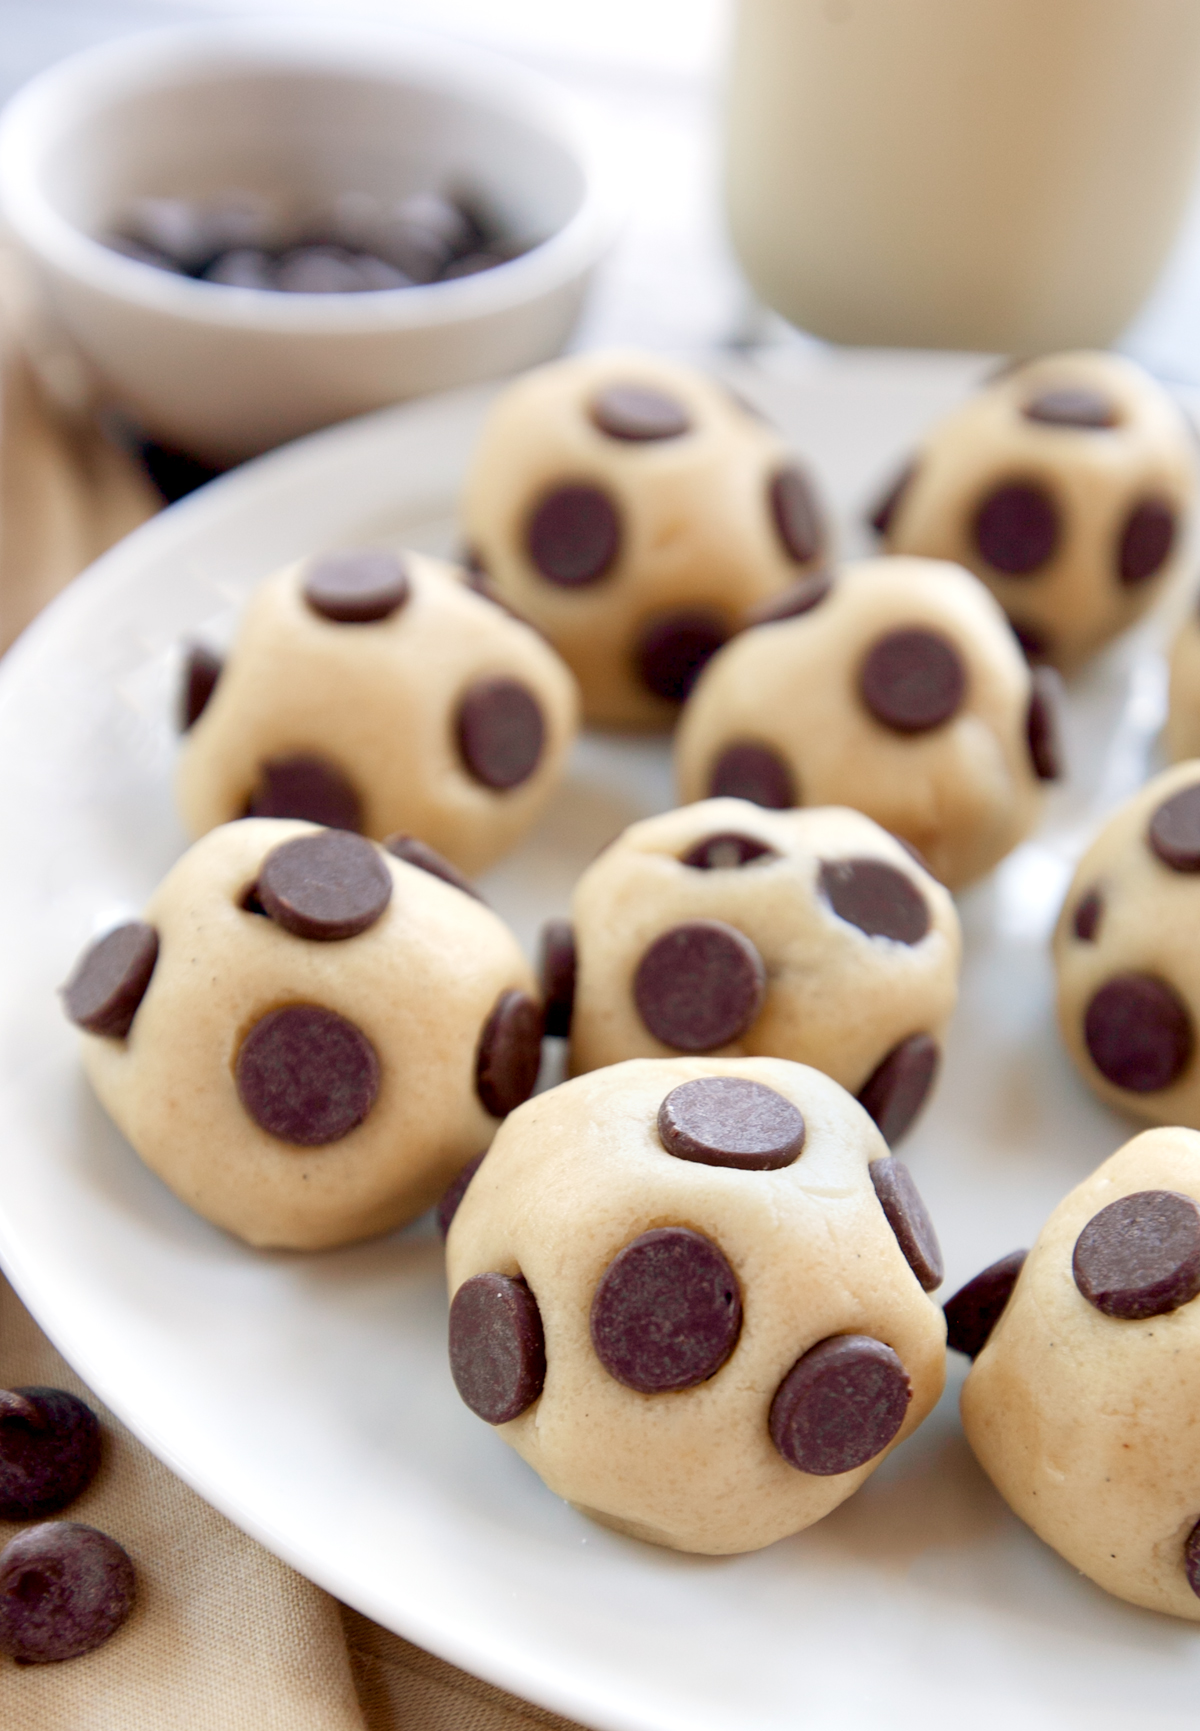 A plate of cookie dough bites stuffed with chocolate chips